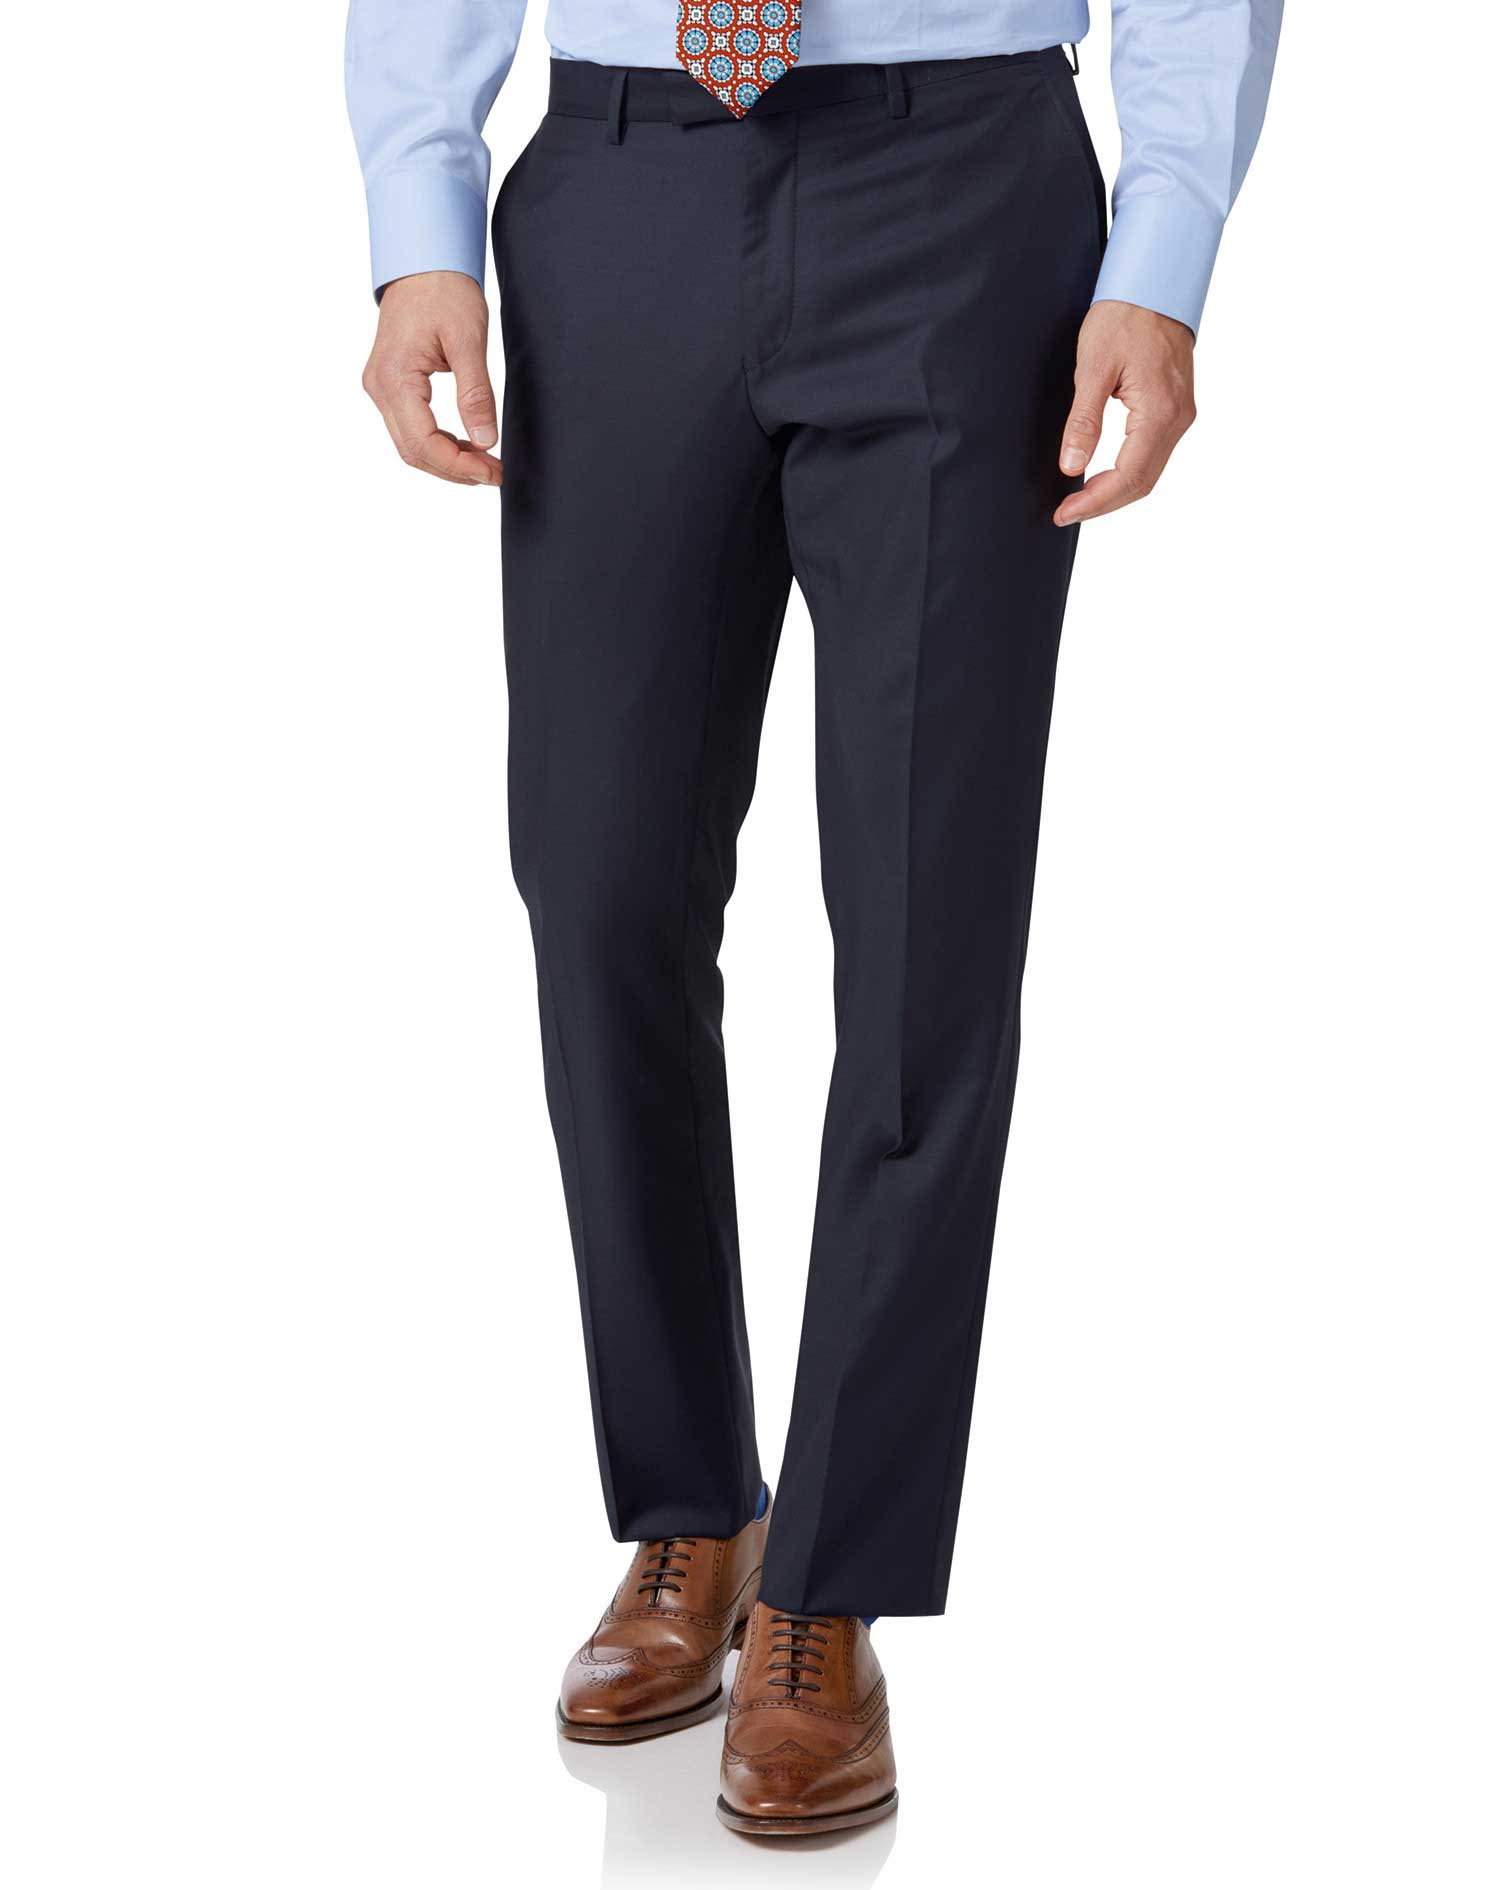 Navy Slim Fit Italian Twill Luxury Suit Trousers Size W36 L34 by Charles Tyrwhitt